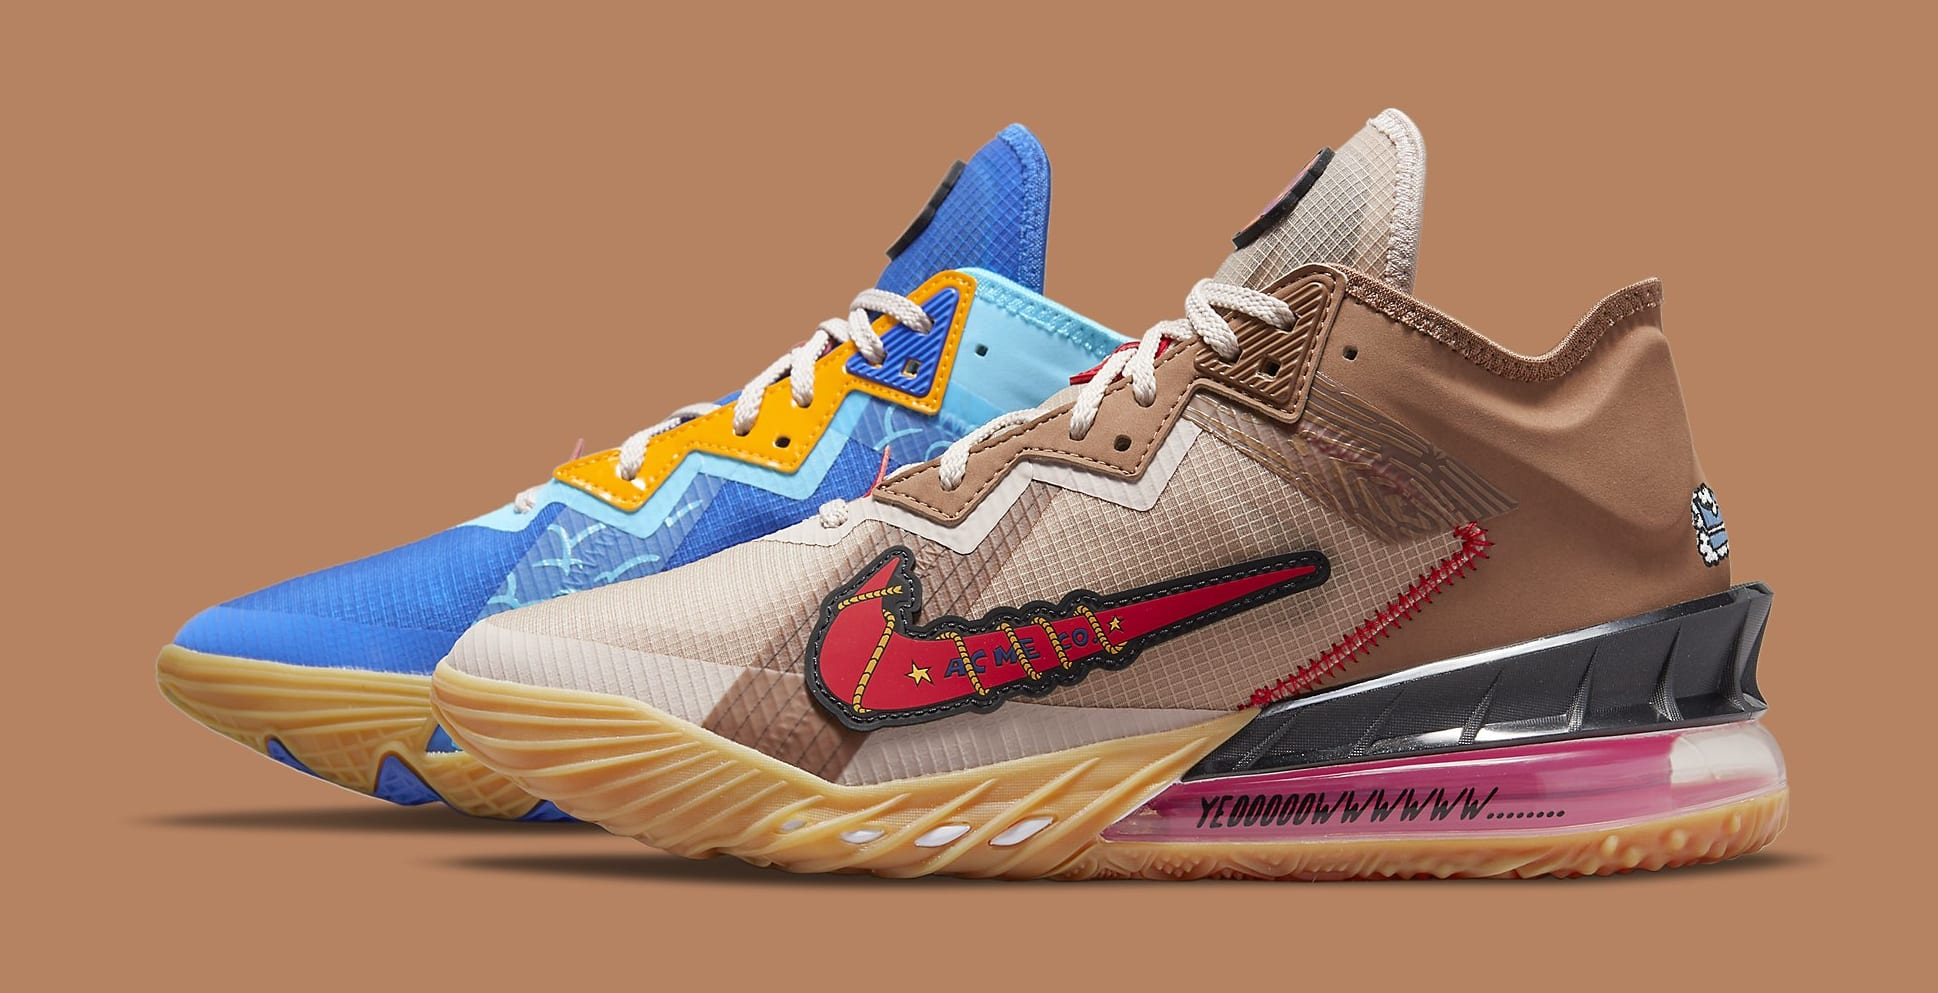 Xbox x Nike LeBron 18 Low 'Wile E. x Roadrunner' DO7172-900 Lateral